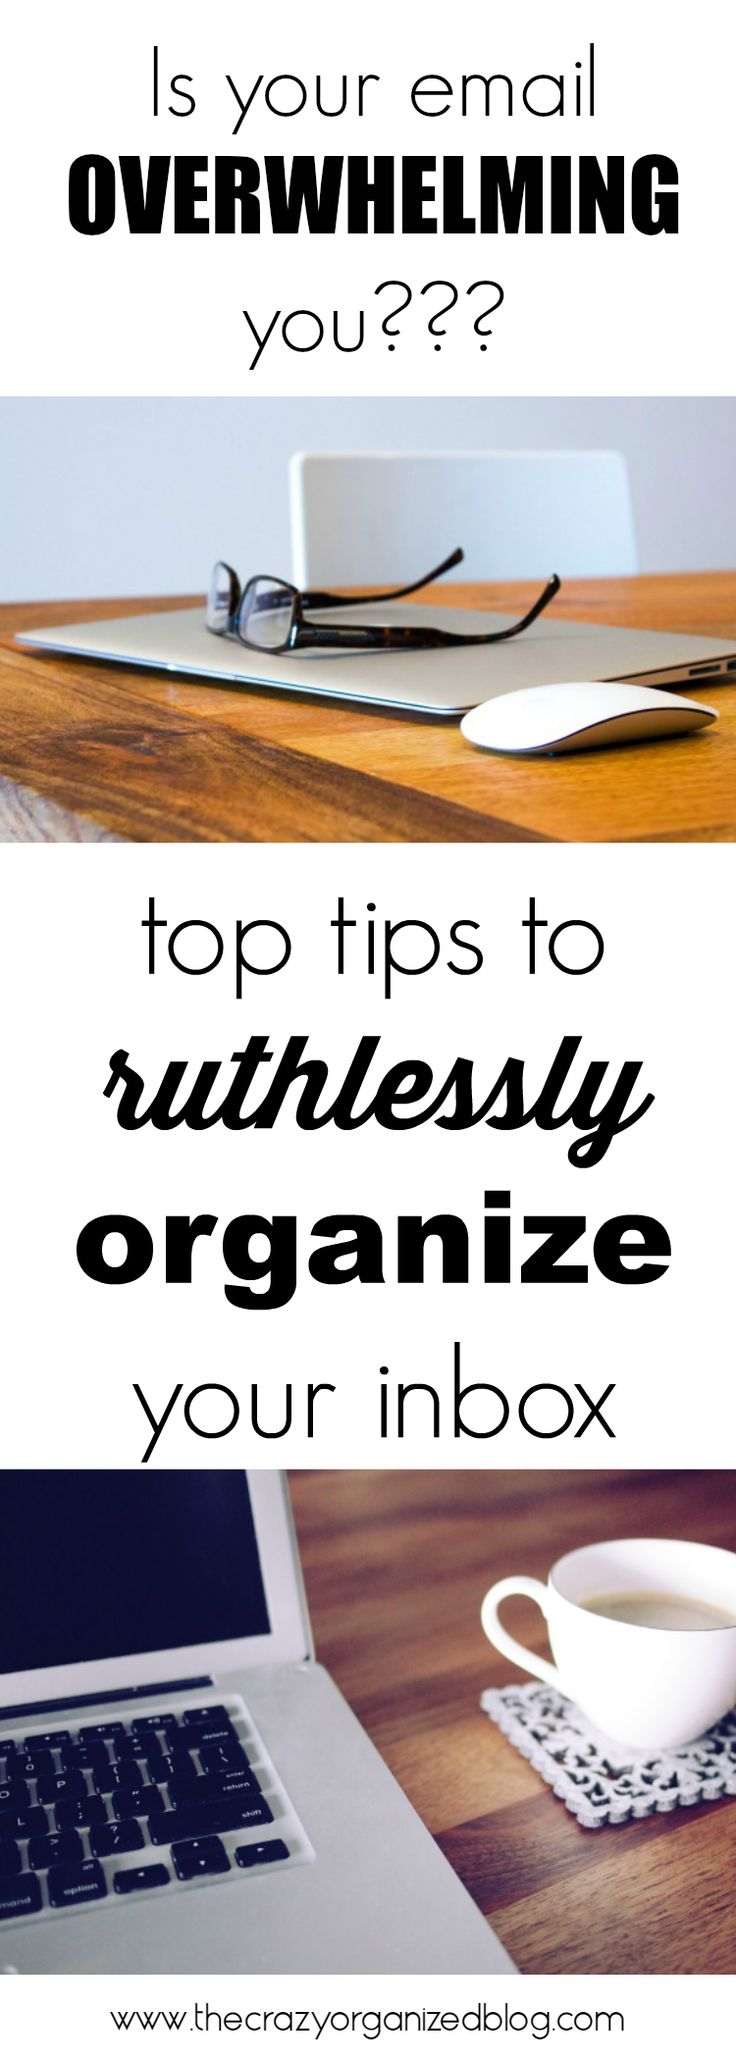 Keep your email ORGANIZED is easier than you think!! Top tips to help you, especially #4!